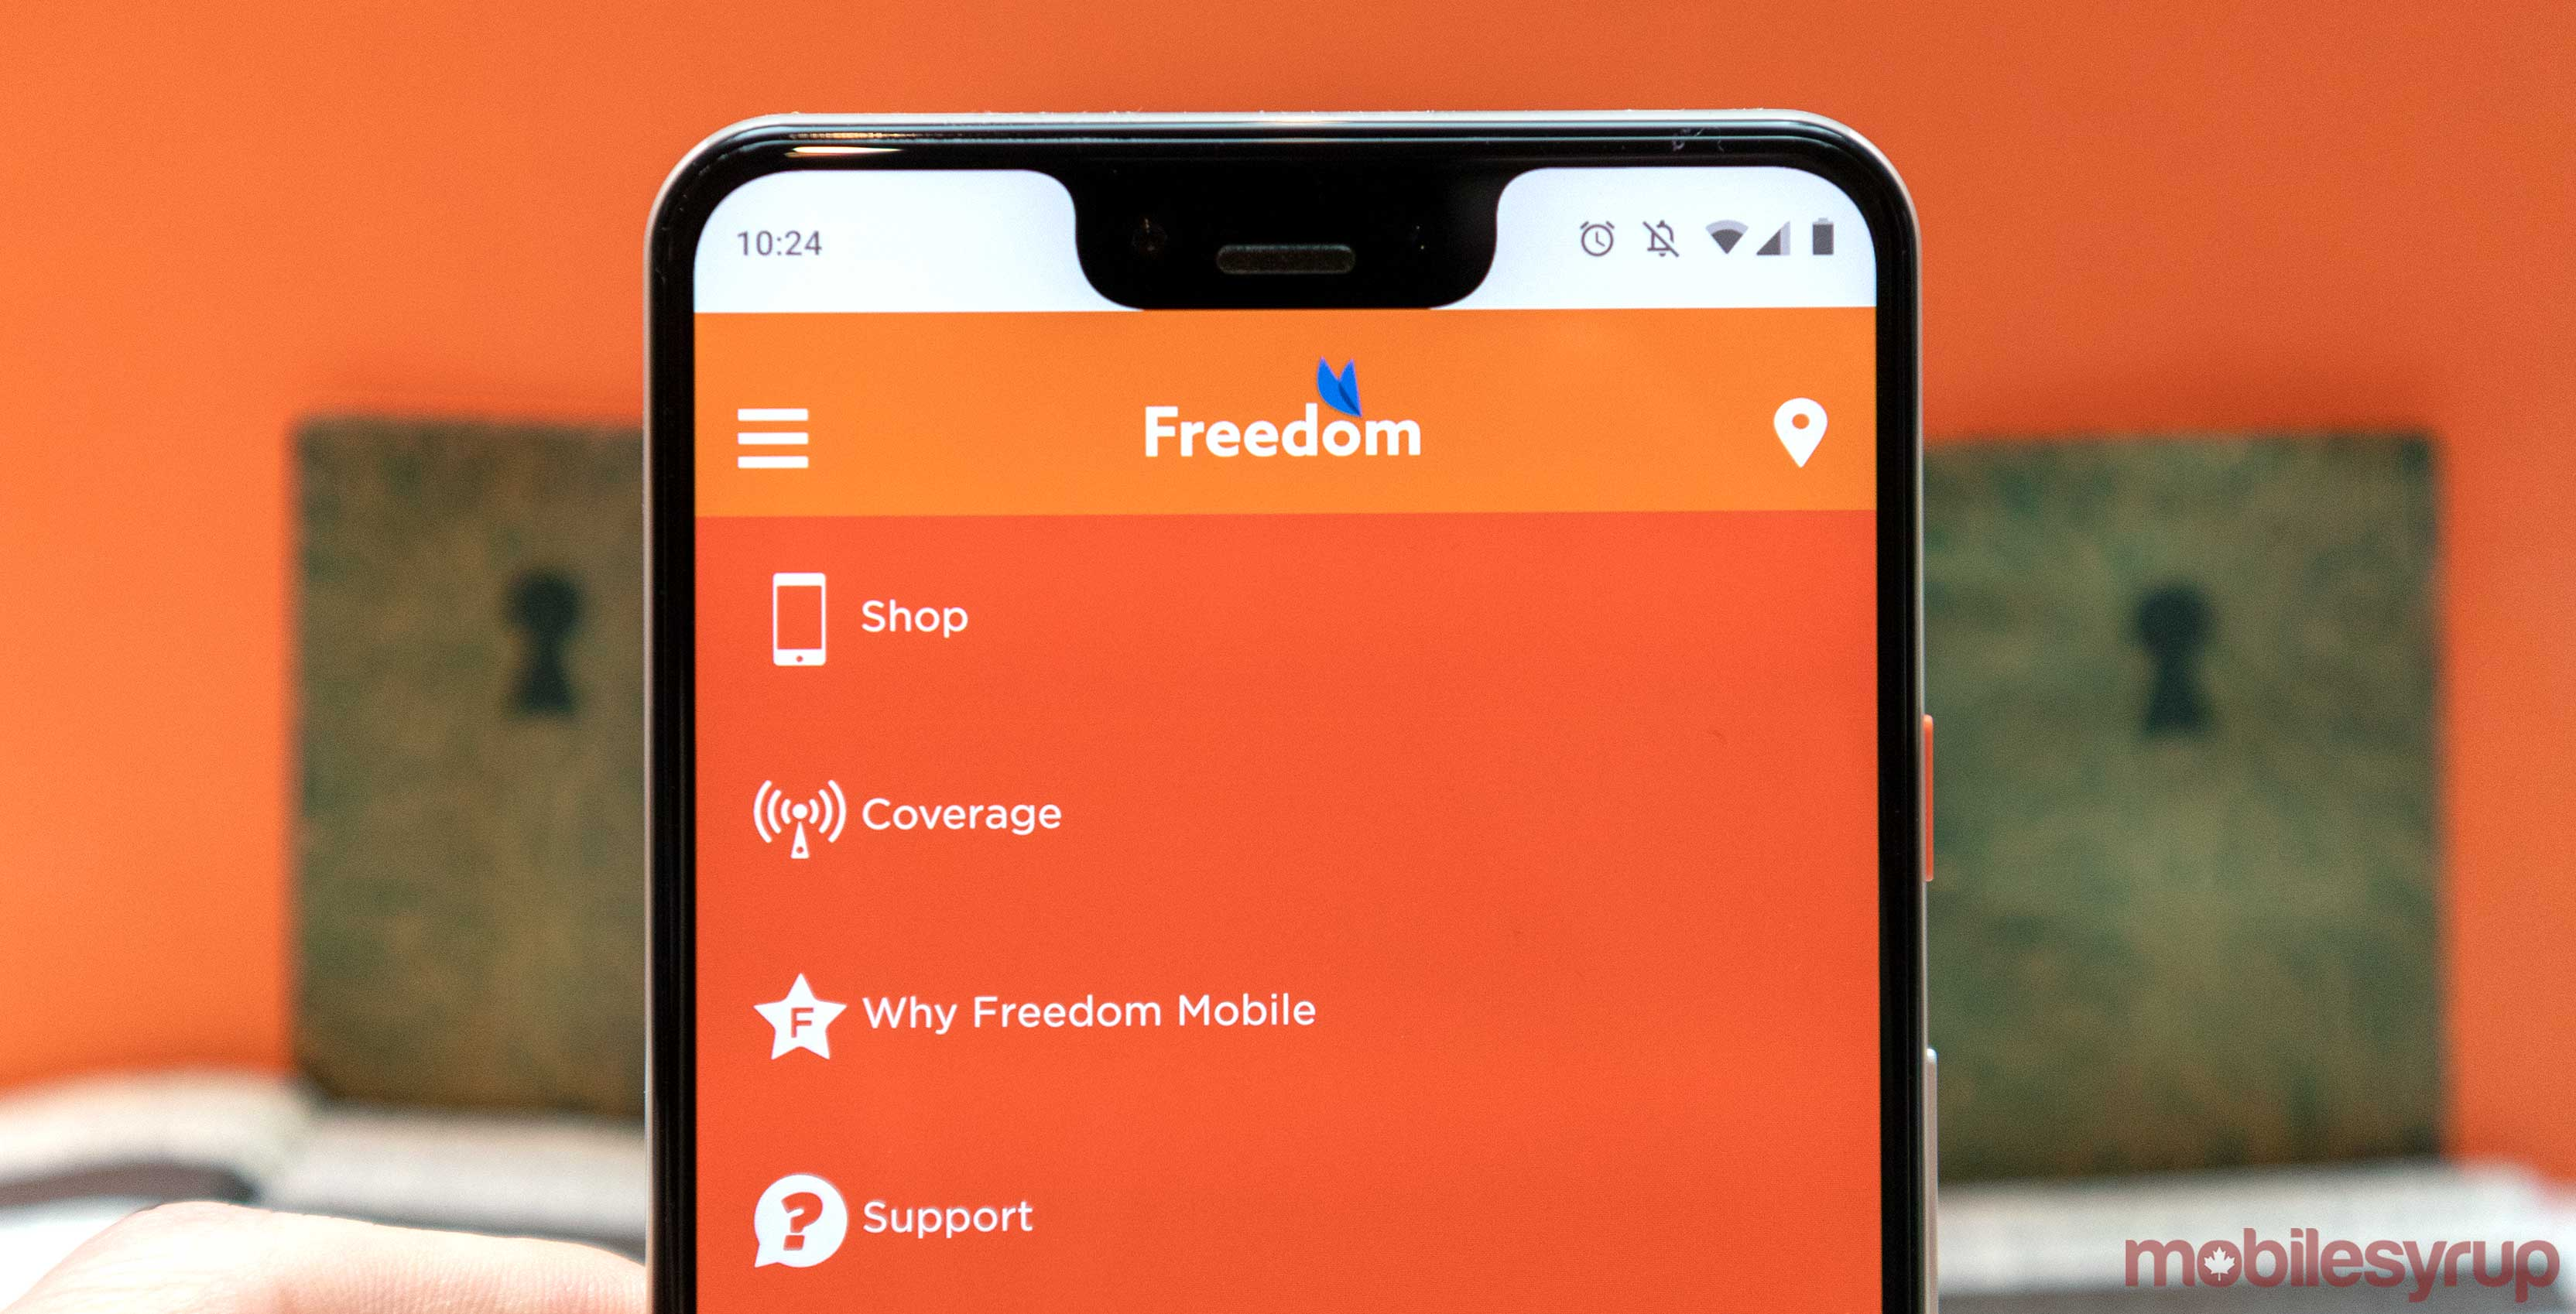 Freedom Mobile gives some users $5 off for three months